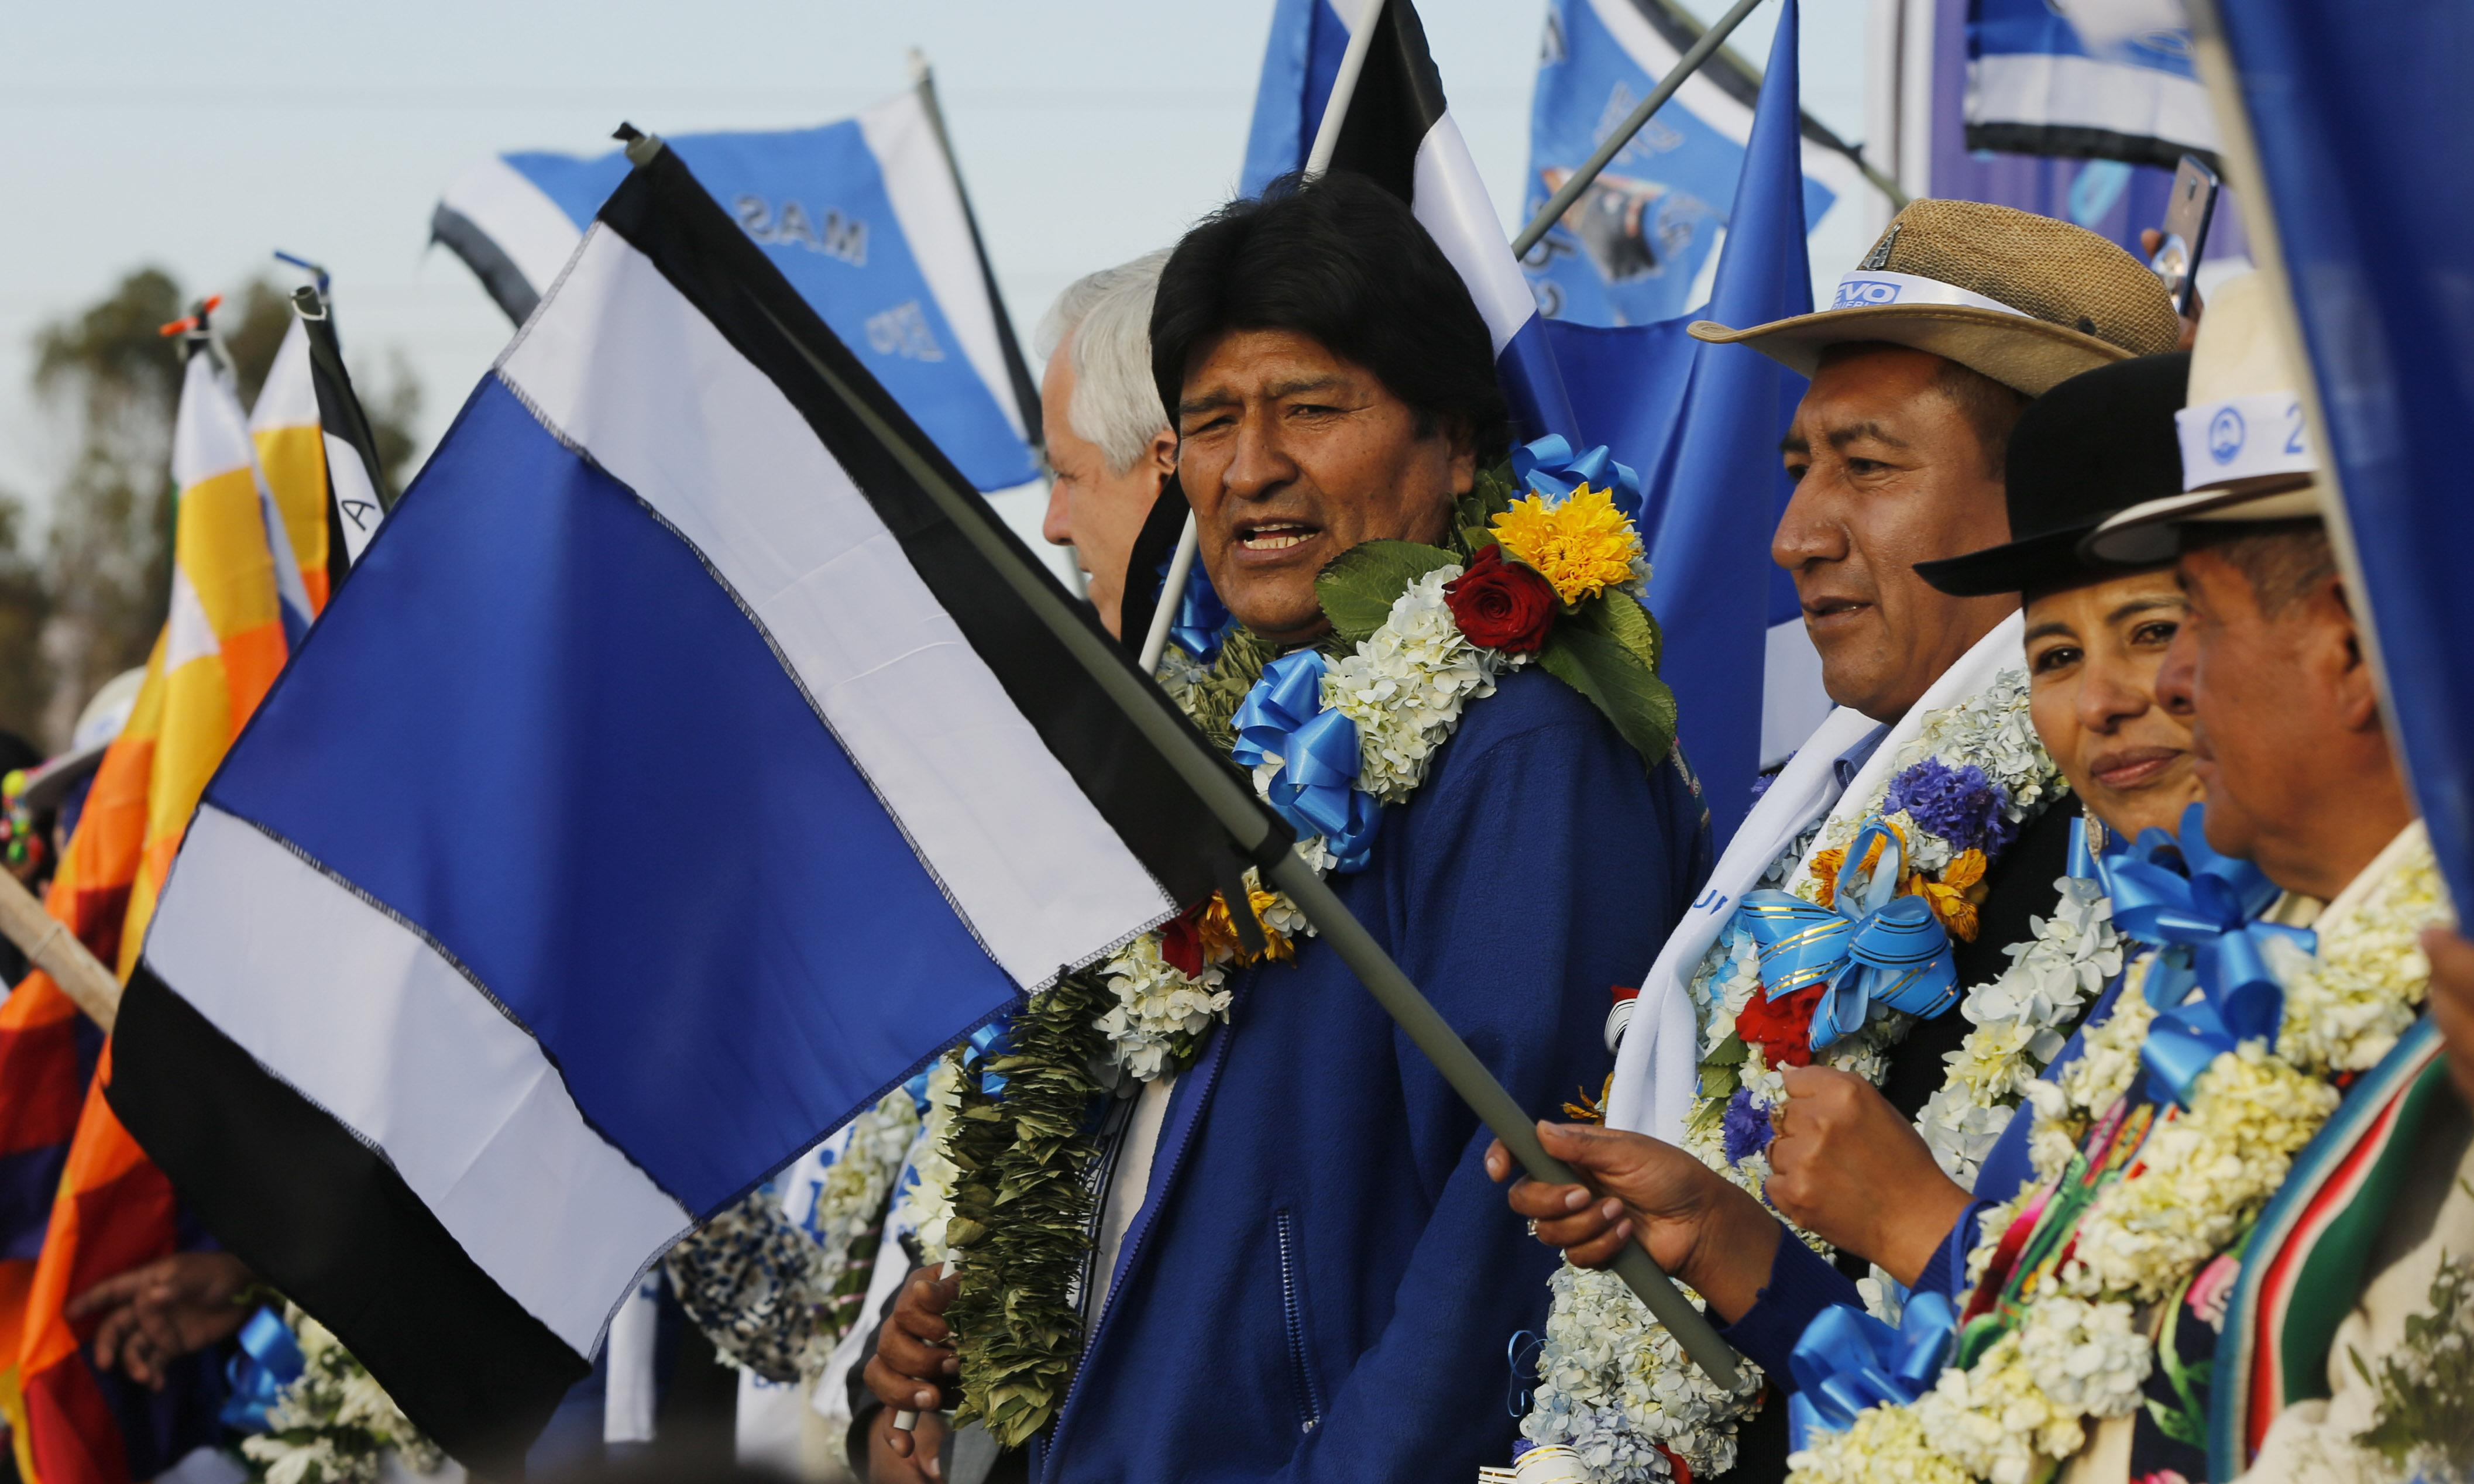 'Democracy in Bolivia has two faces': ambivalence as Evo Morales seeks fourth term